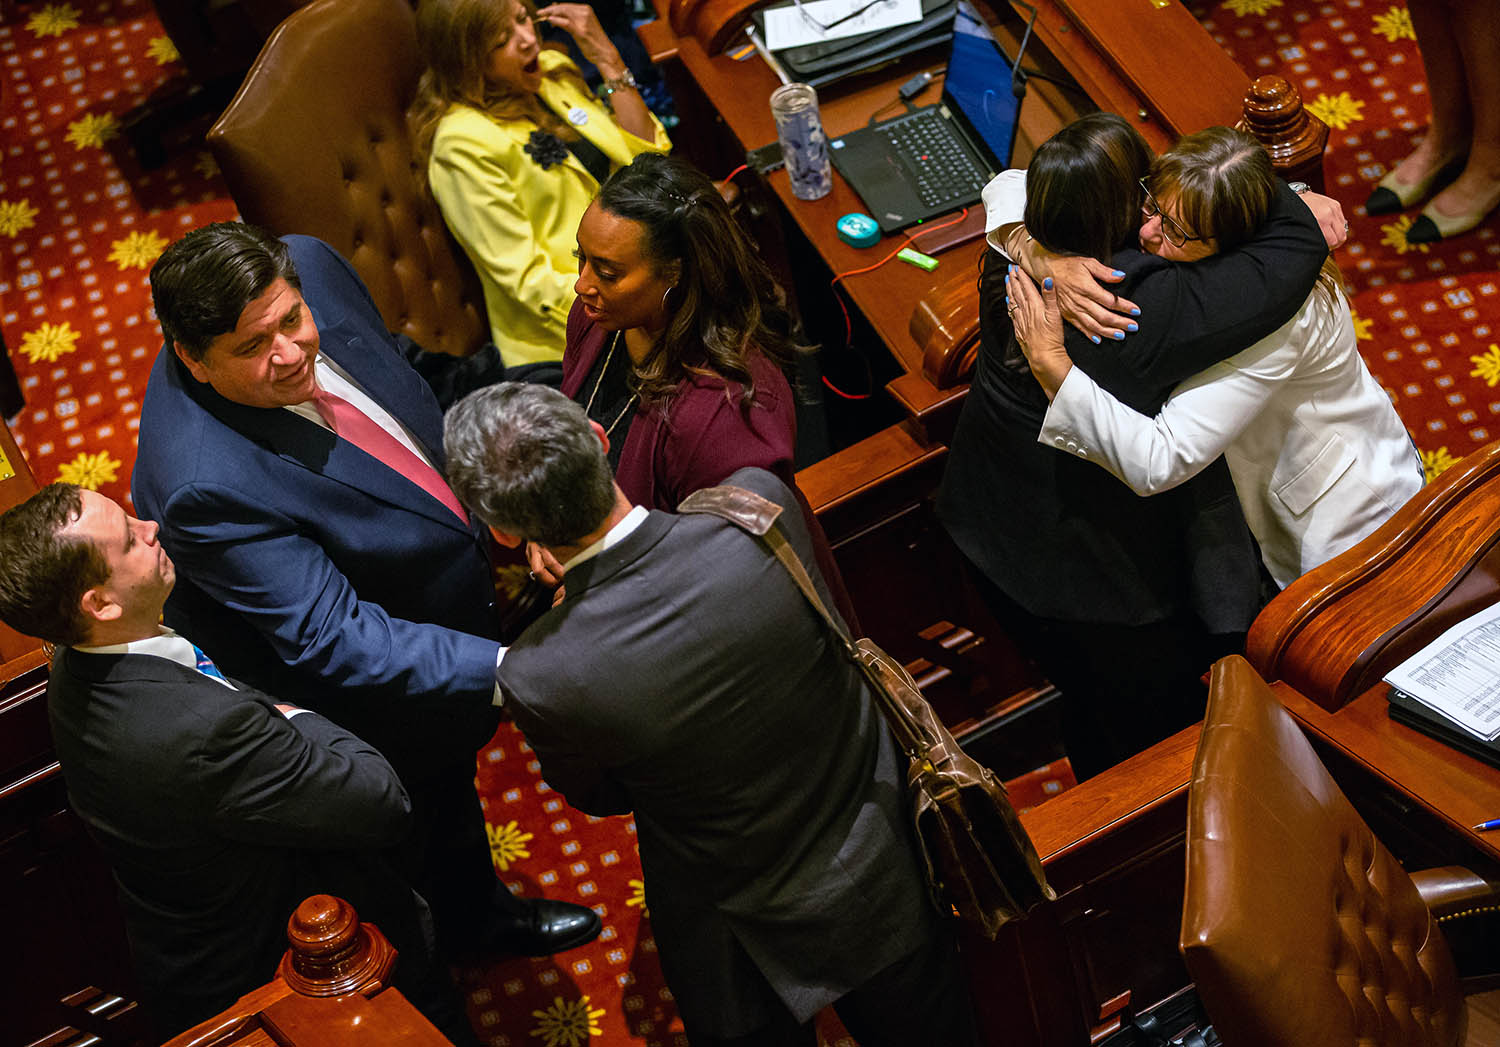 Illinois Governor J.B. Pritzker, left, and Illinois State Sen. Melinda Bush, D-Grayslake, right, celebrate passing the Reproductive Health Act, an abortion rights bill establishing a fundamental right for women to get an abortion, in the Illinois Senate in a 34-20 vote late into the evening on the scheduled last day of the Spring Session at the Illinois State Capitol, Friday, May 31, 2019, in Springfield, Ill. [Justin L. Fowler/The State Journal-Register]